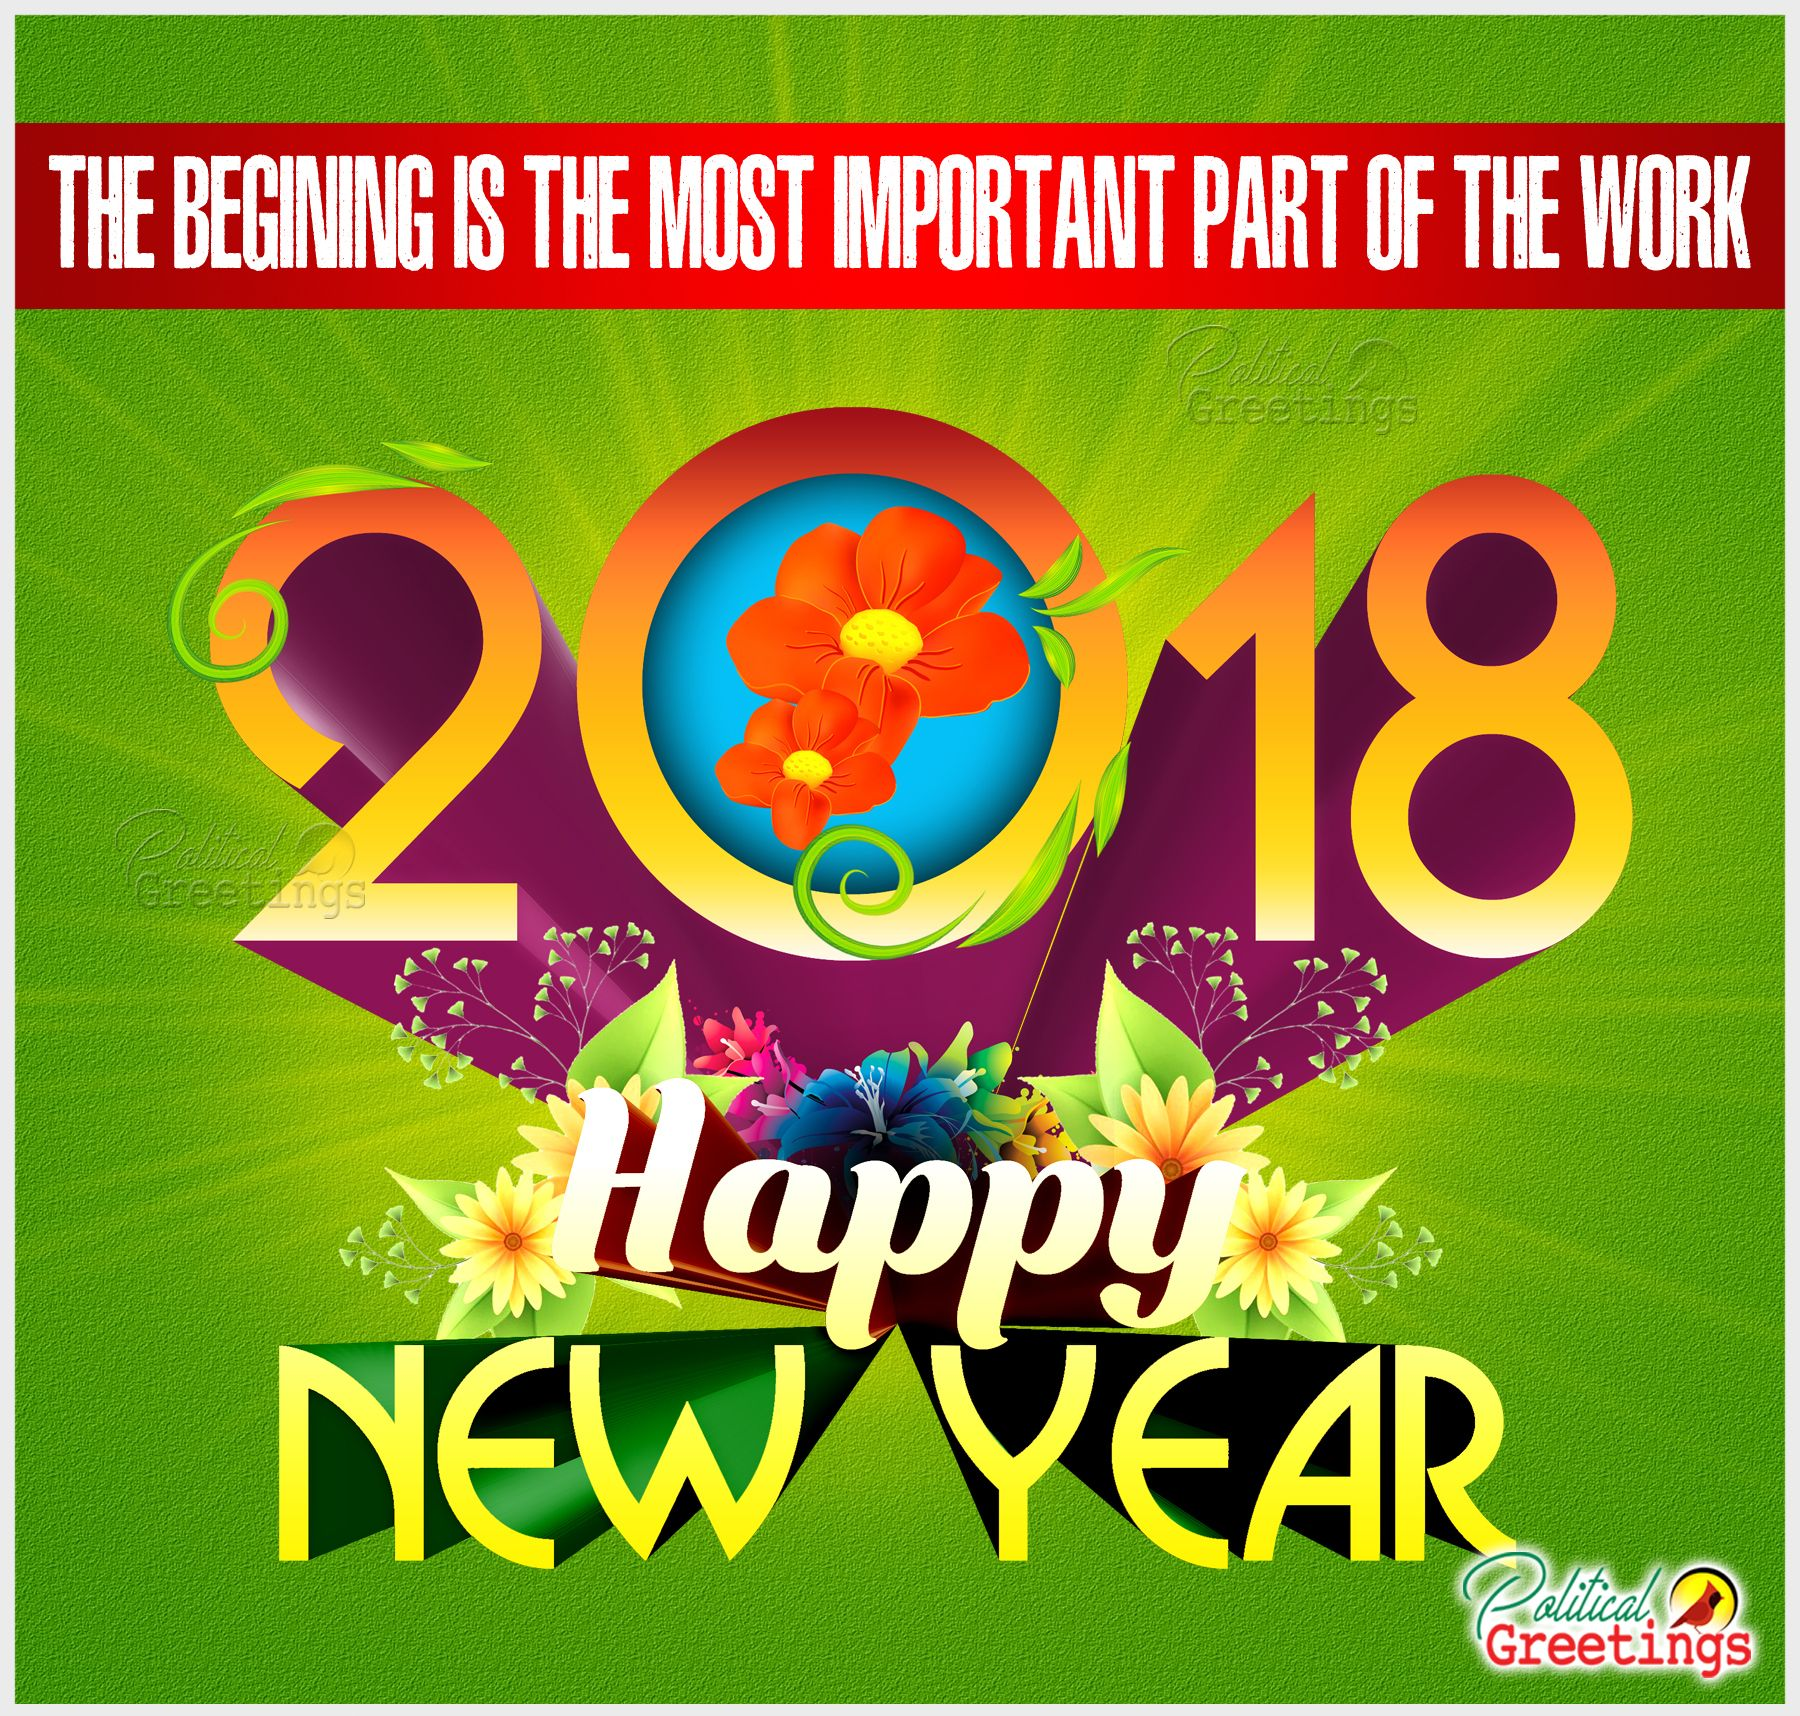 Happy new year 2018 wishes quotes and greetings HD ...